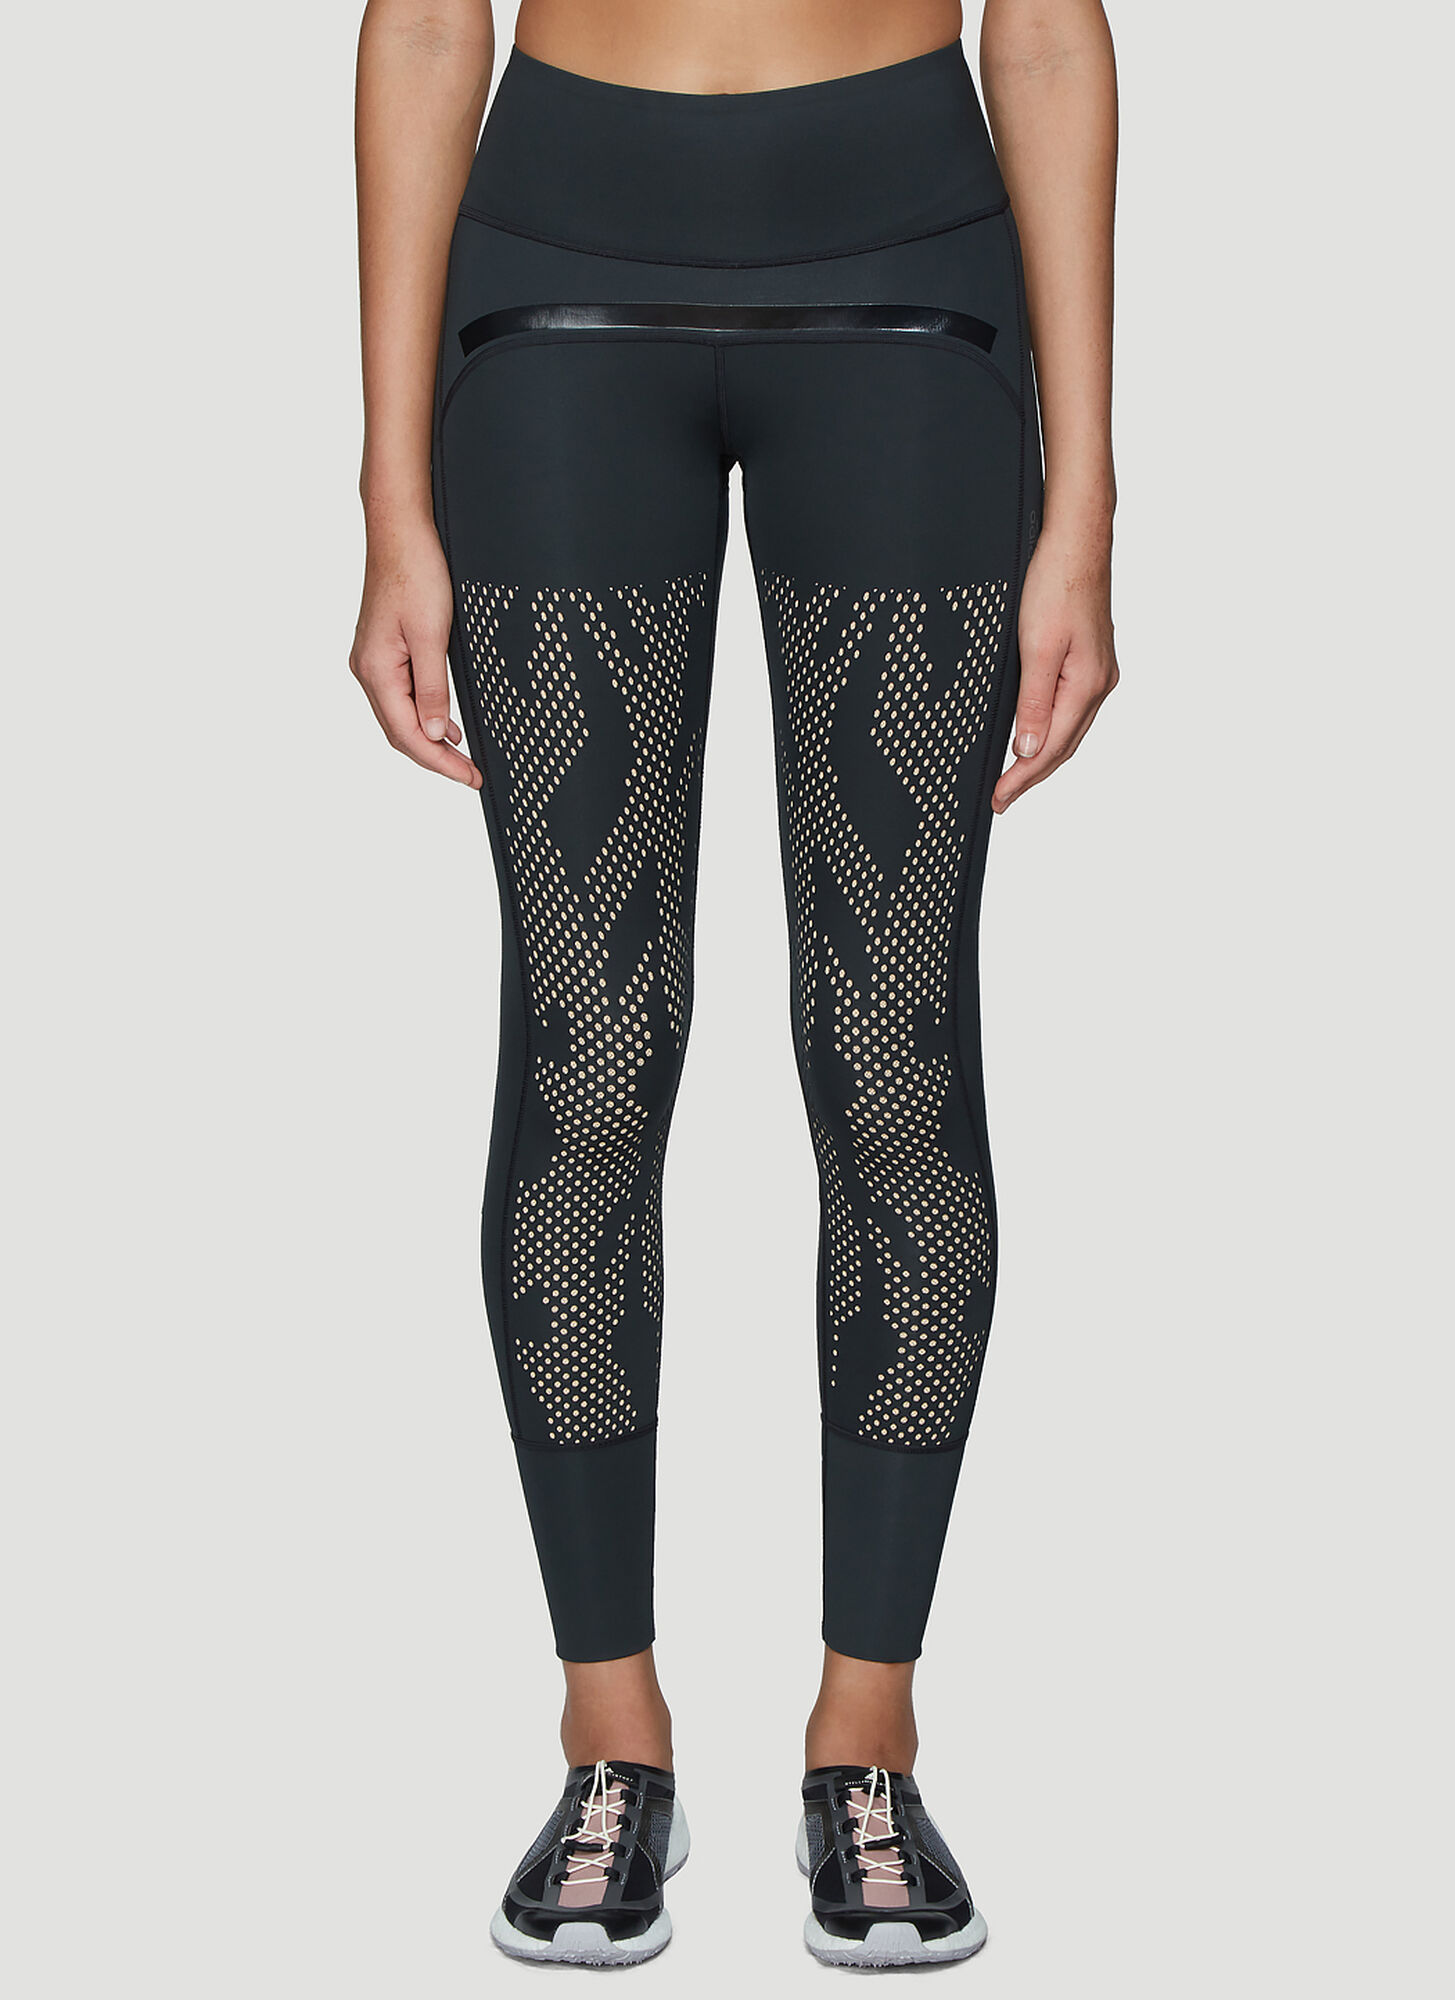 adidas by Stella McCartney Performance Leggings in Black